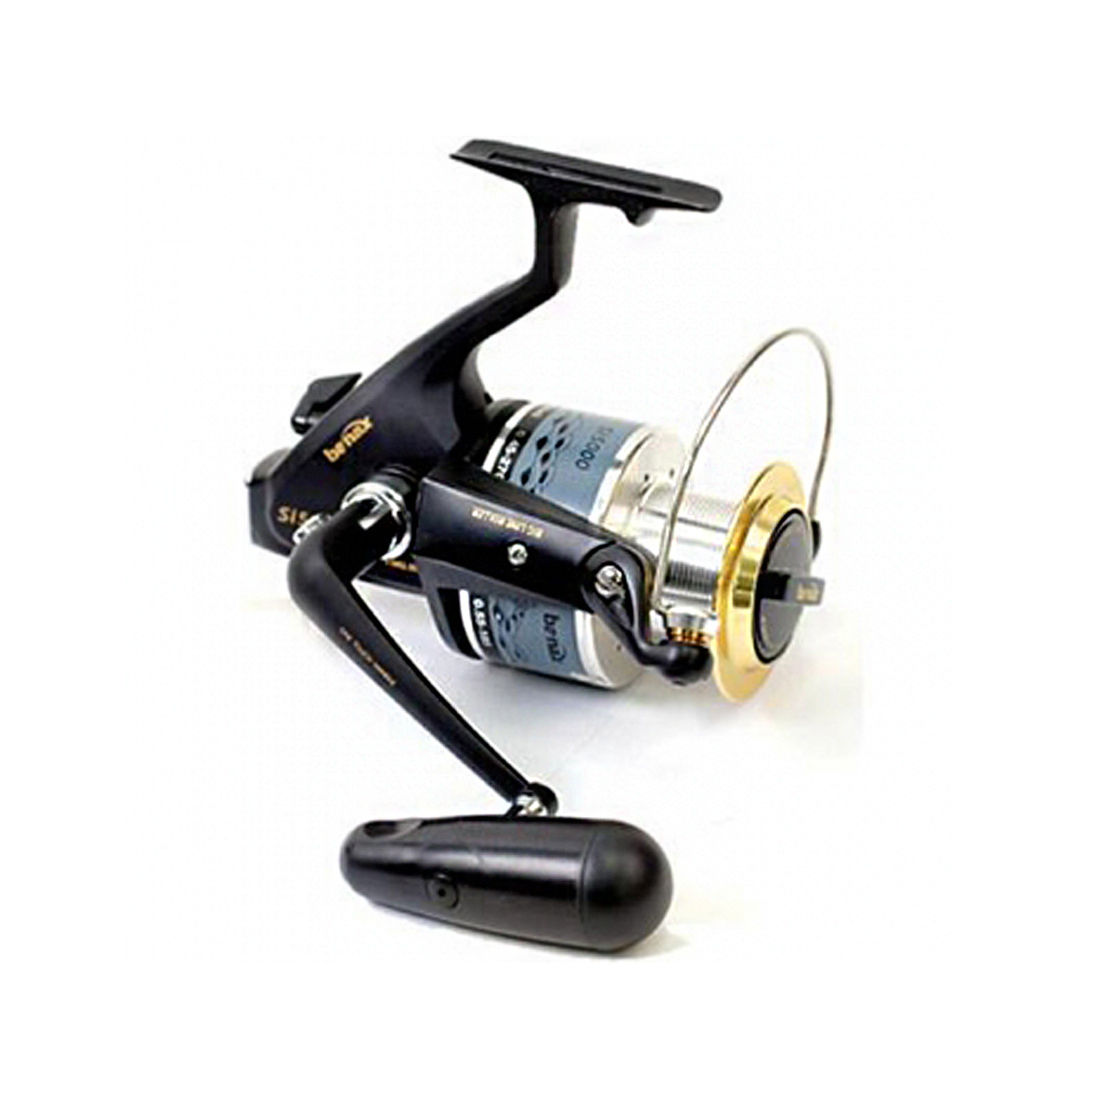 Banax Si Large Spinning Reels Saltwater Freshwater Non Vibration Fishing Ebay